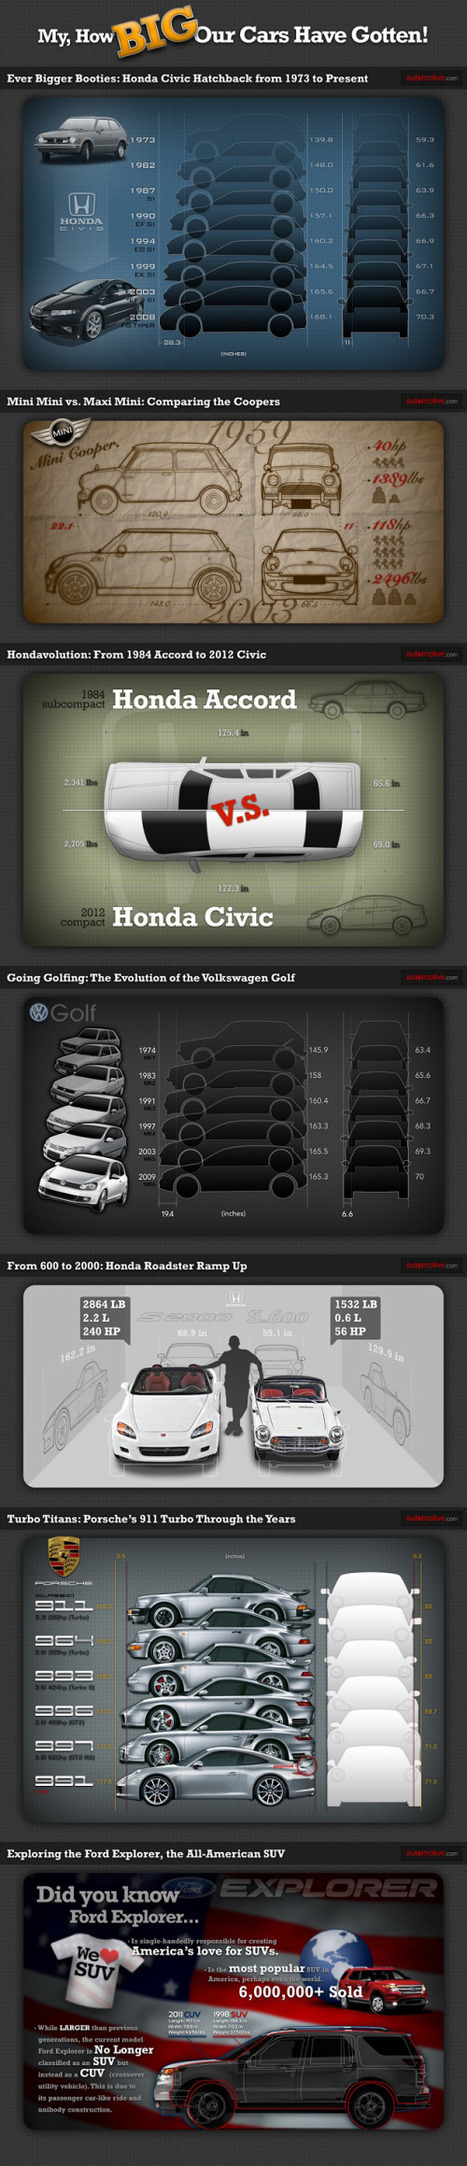 Car Sizes Through the Years | People Data, Infographics & Sweet Stats | Scoop.it